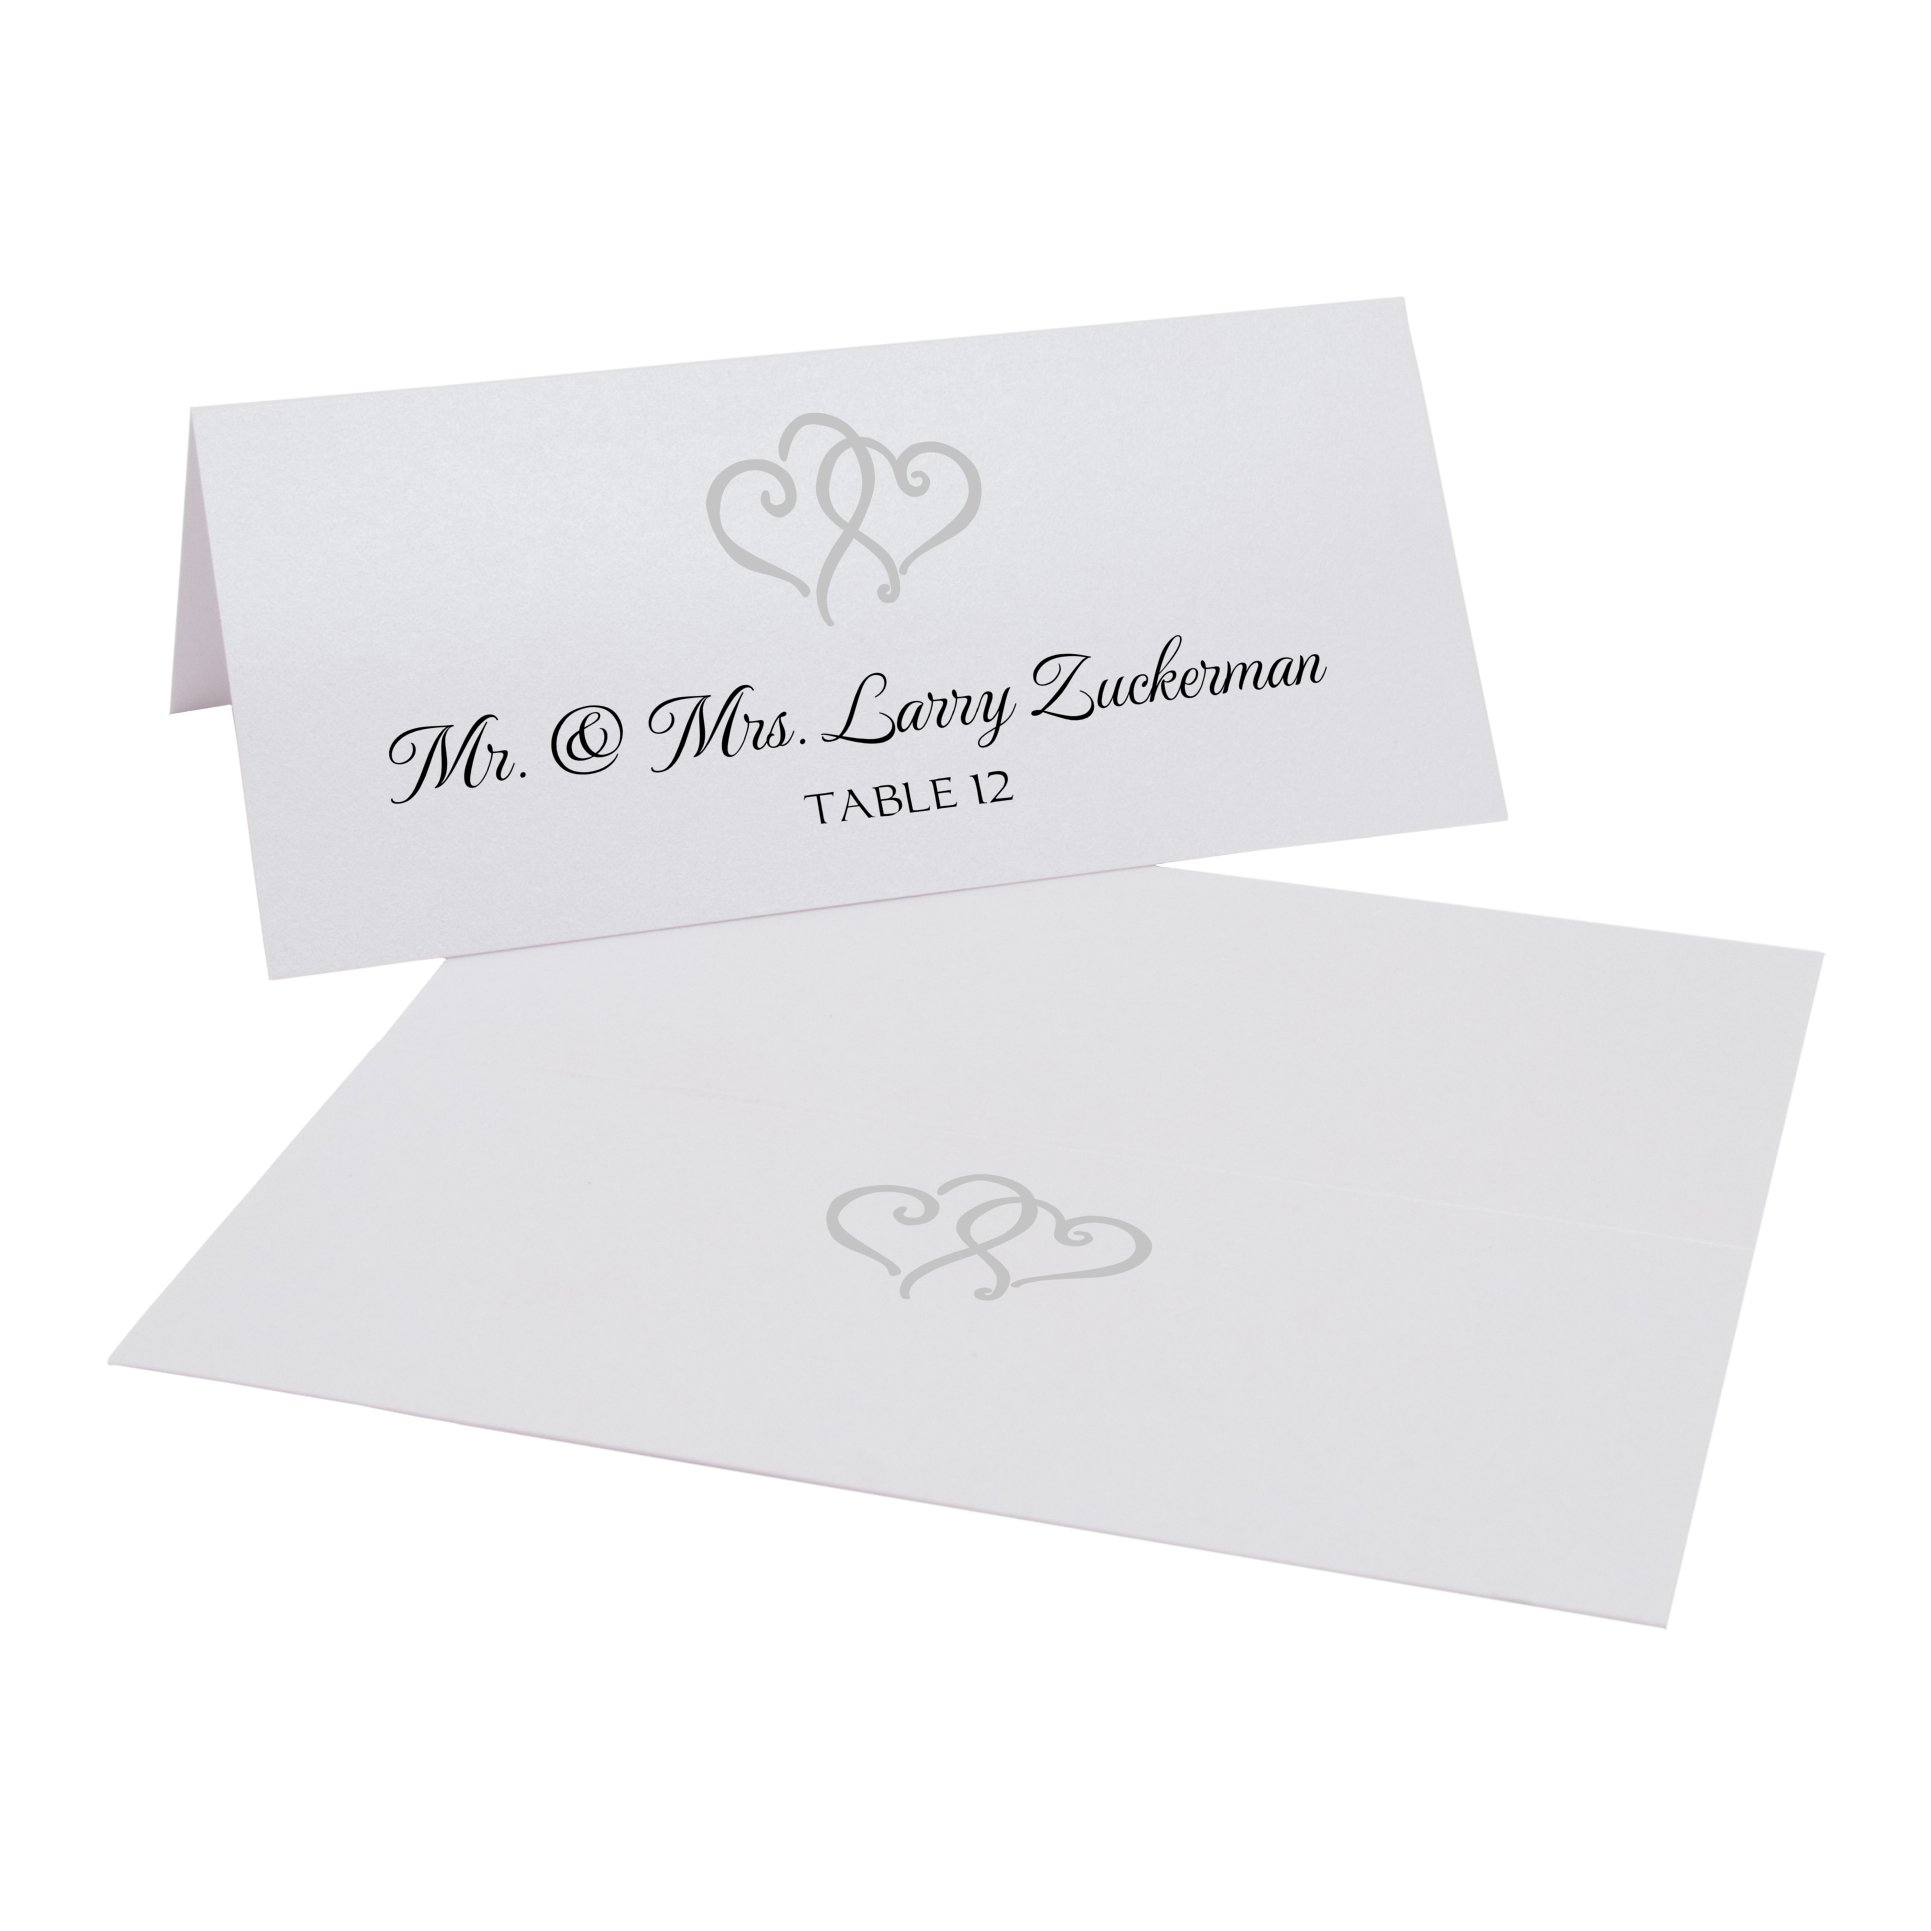 Linked Hearts Place Cards, Pearl White, Silver, Set of 375